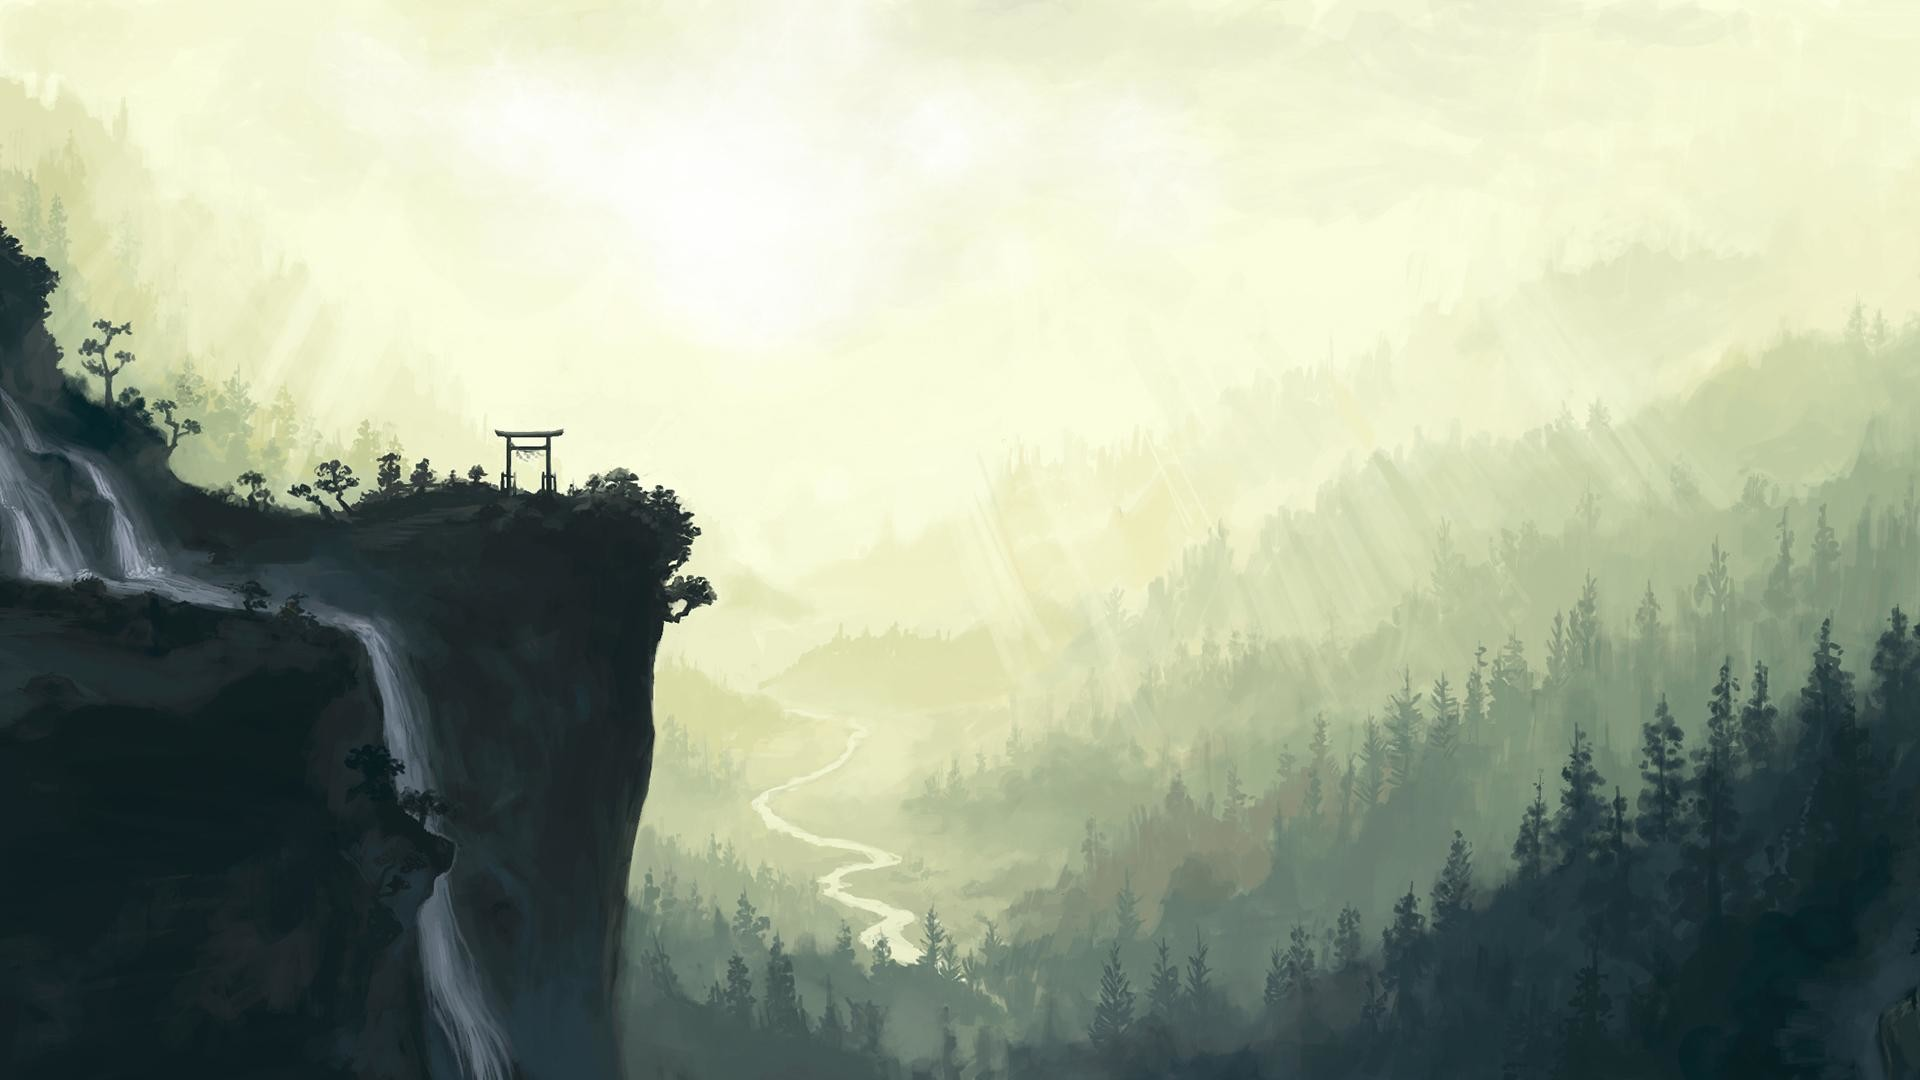 Res: 1920x1080, HD Japanese Scenery Wallpaper